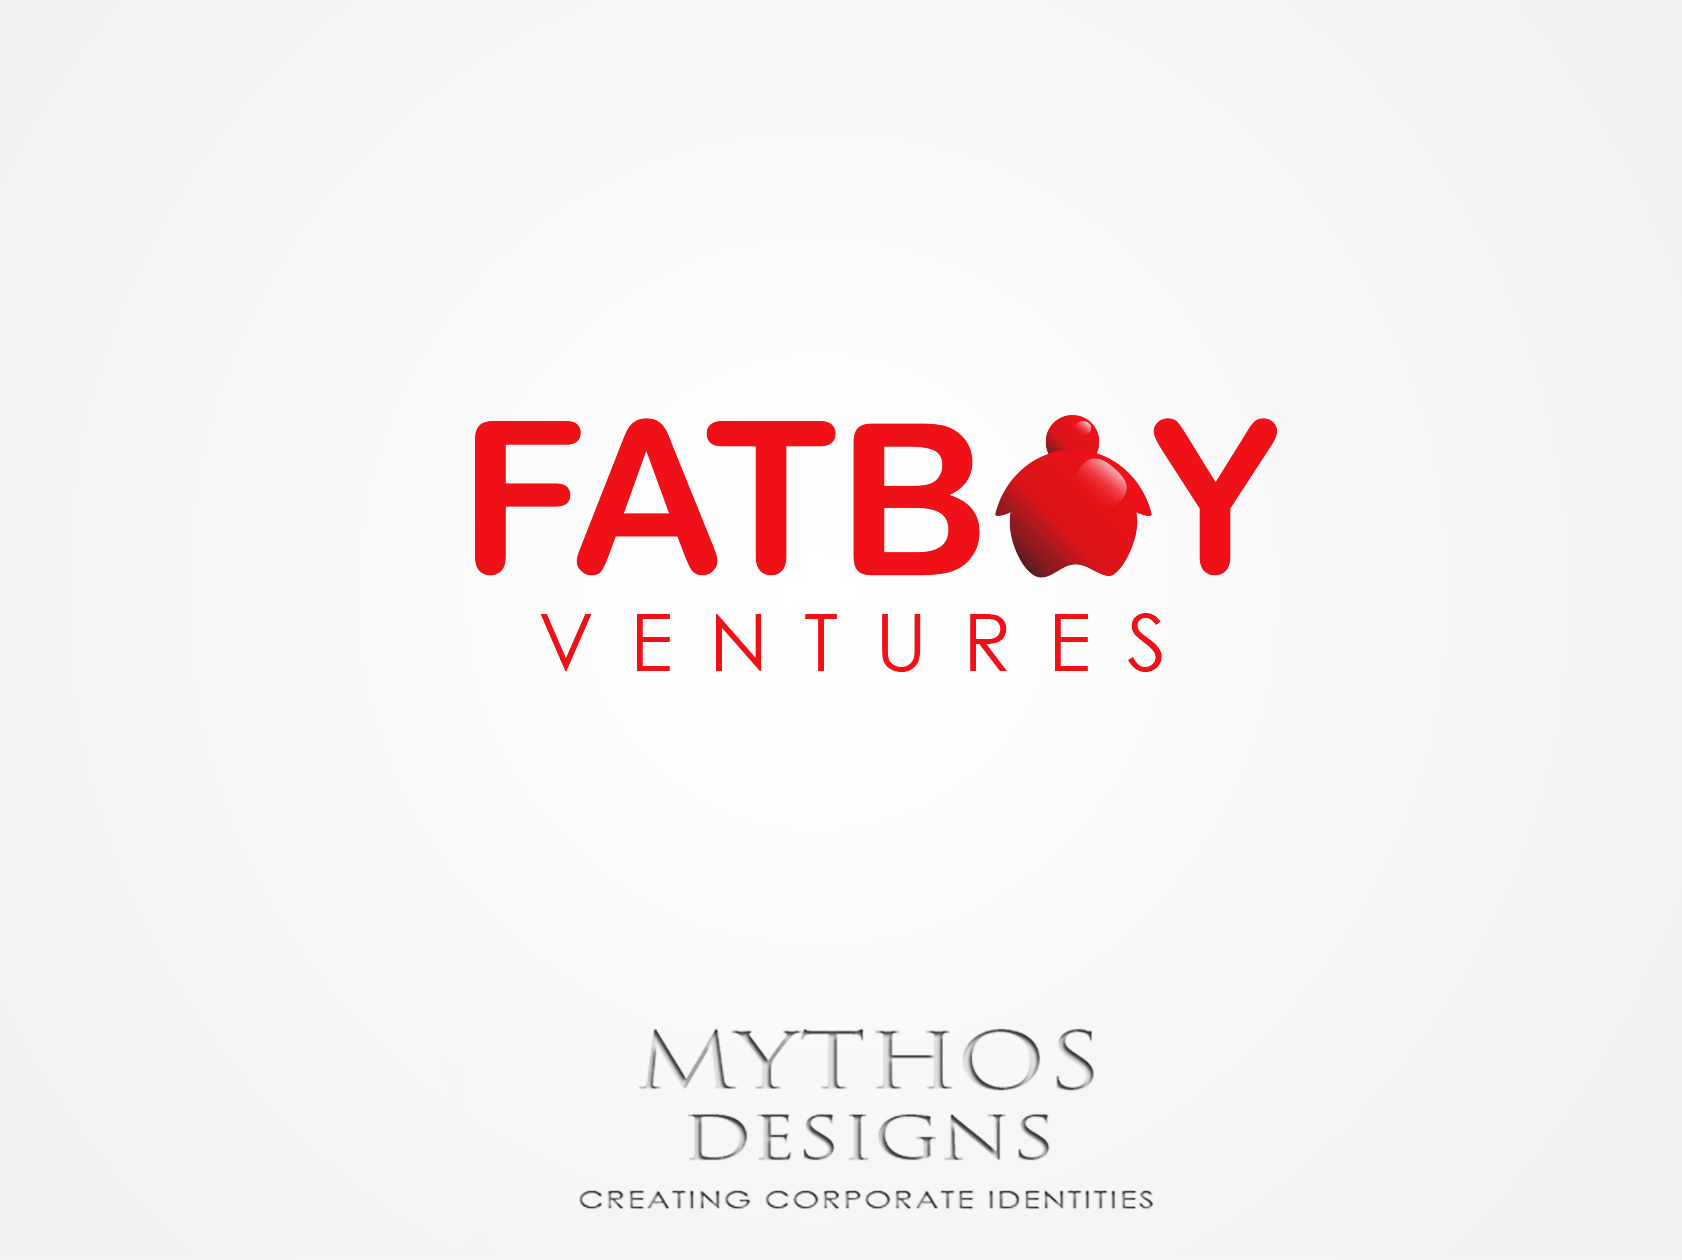 Logo Design by Mythos Designs - Entry No. 93 in the Logo Design Contest Fun Logo Design for Fat Boy Ventures.